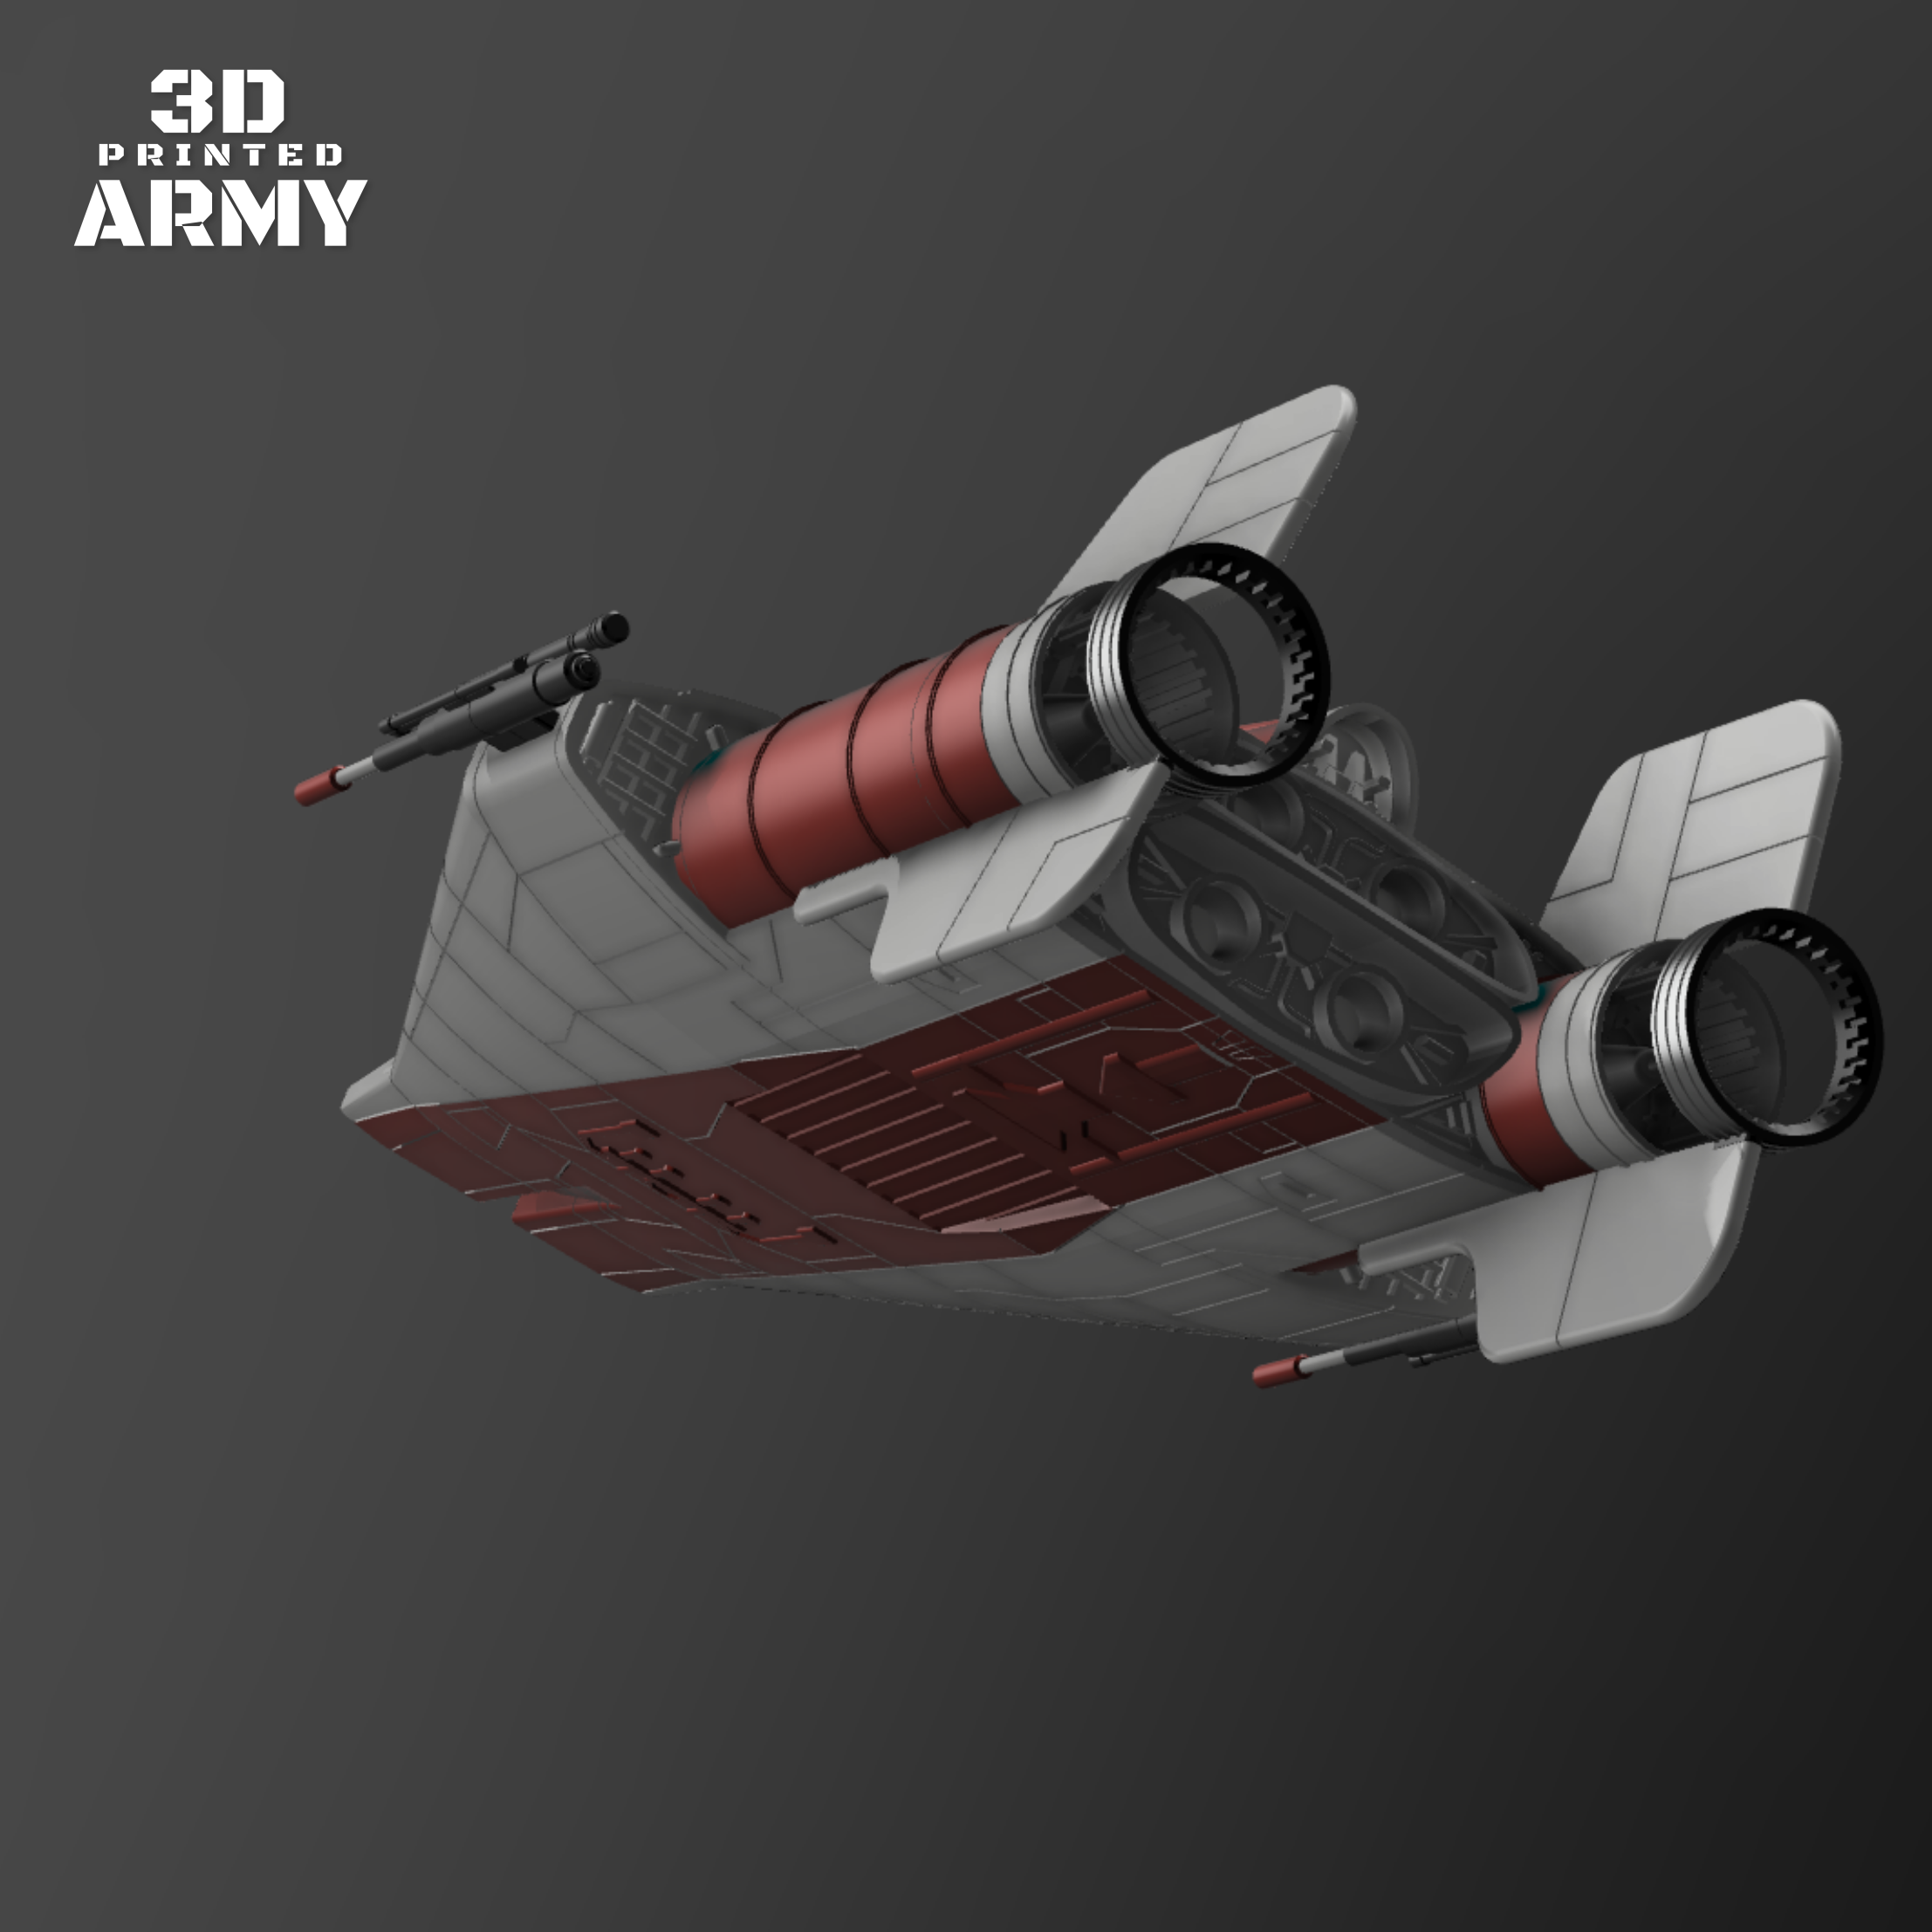 cults3.png Download STL file STAR WARS   A-WING RZ-1 STARFIGHTER with BASEMENT  • Template to 3D print, 3DprintedArmy